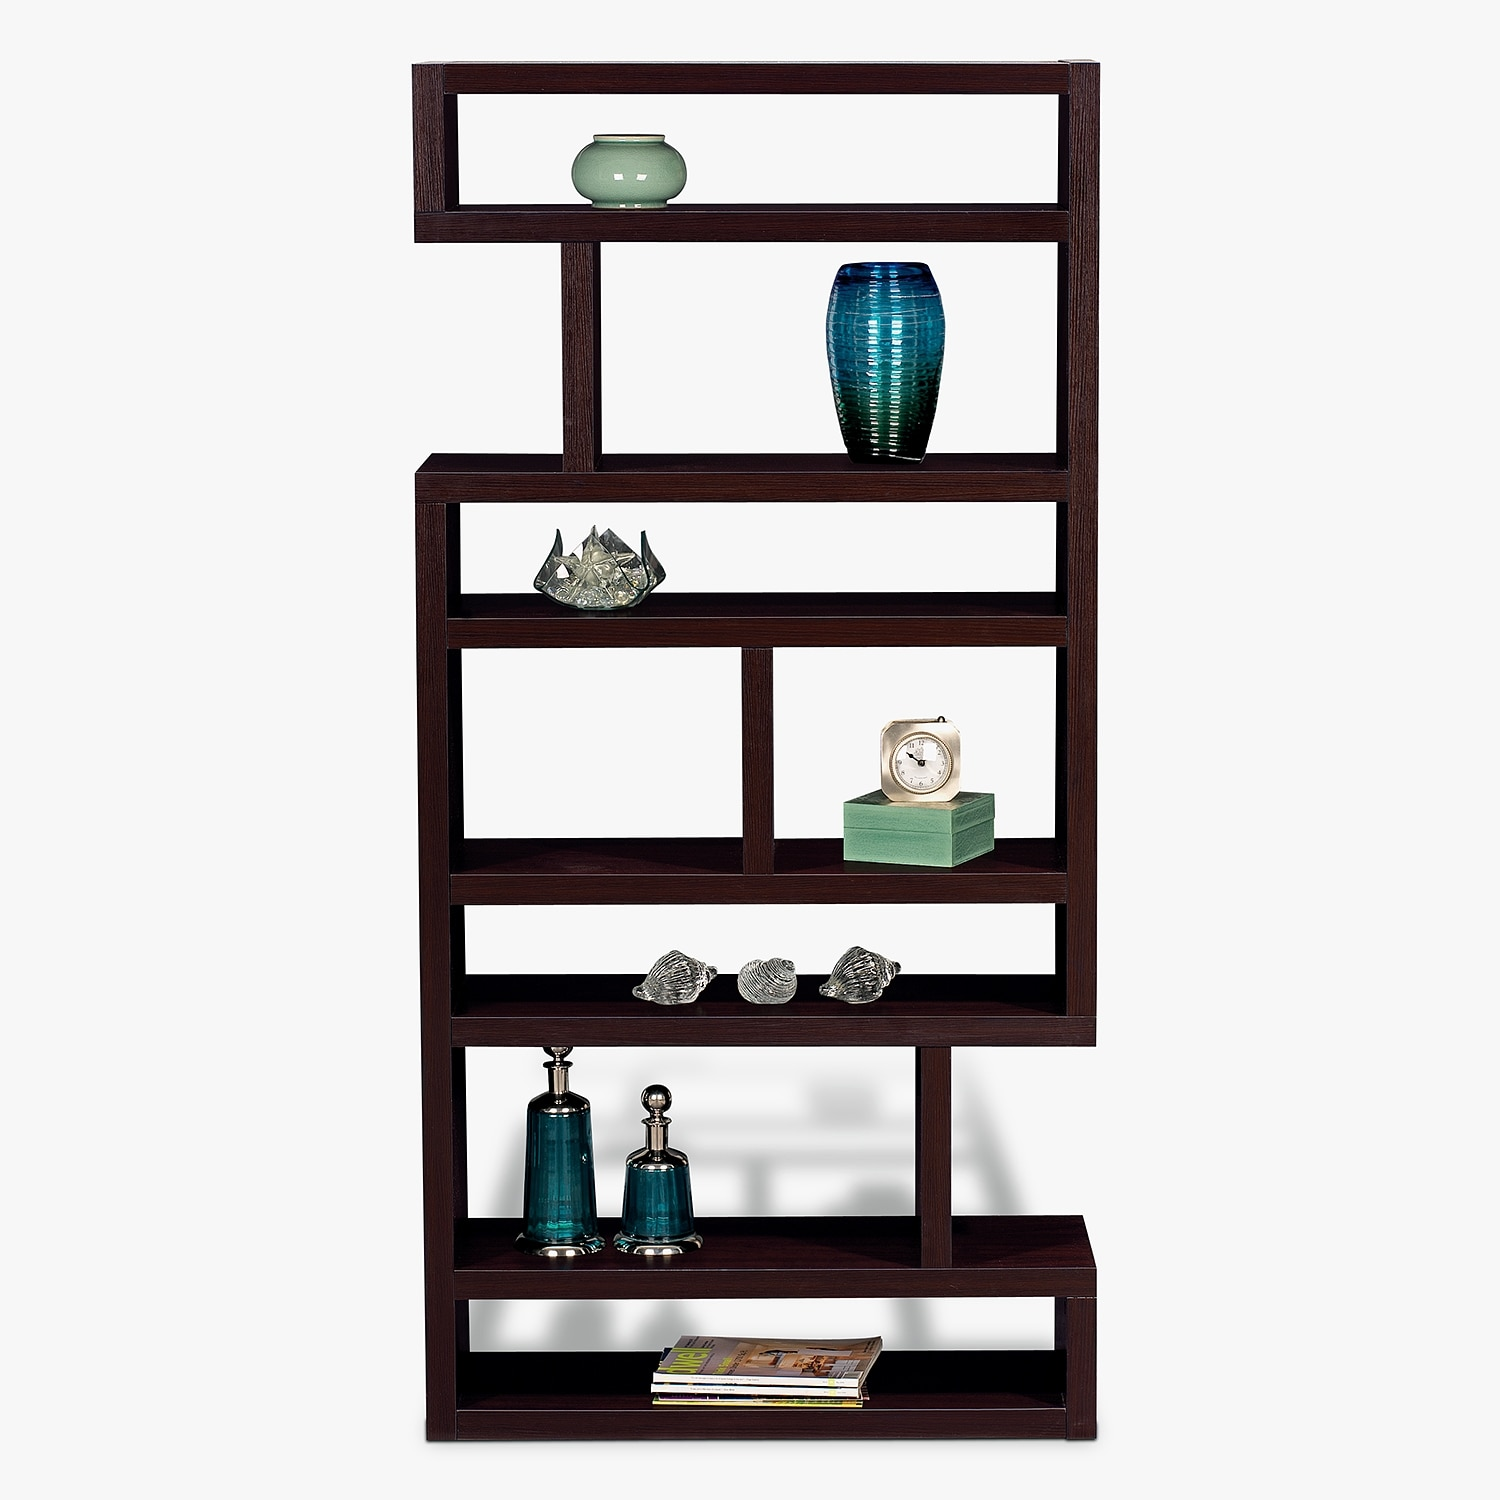 American Signature Furniture - Magma Accent Pieces Large Bookcase